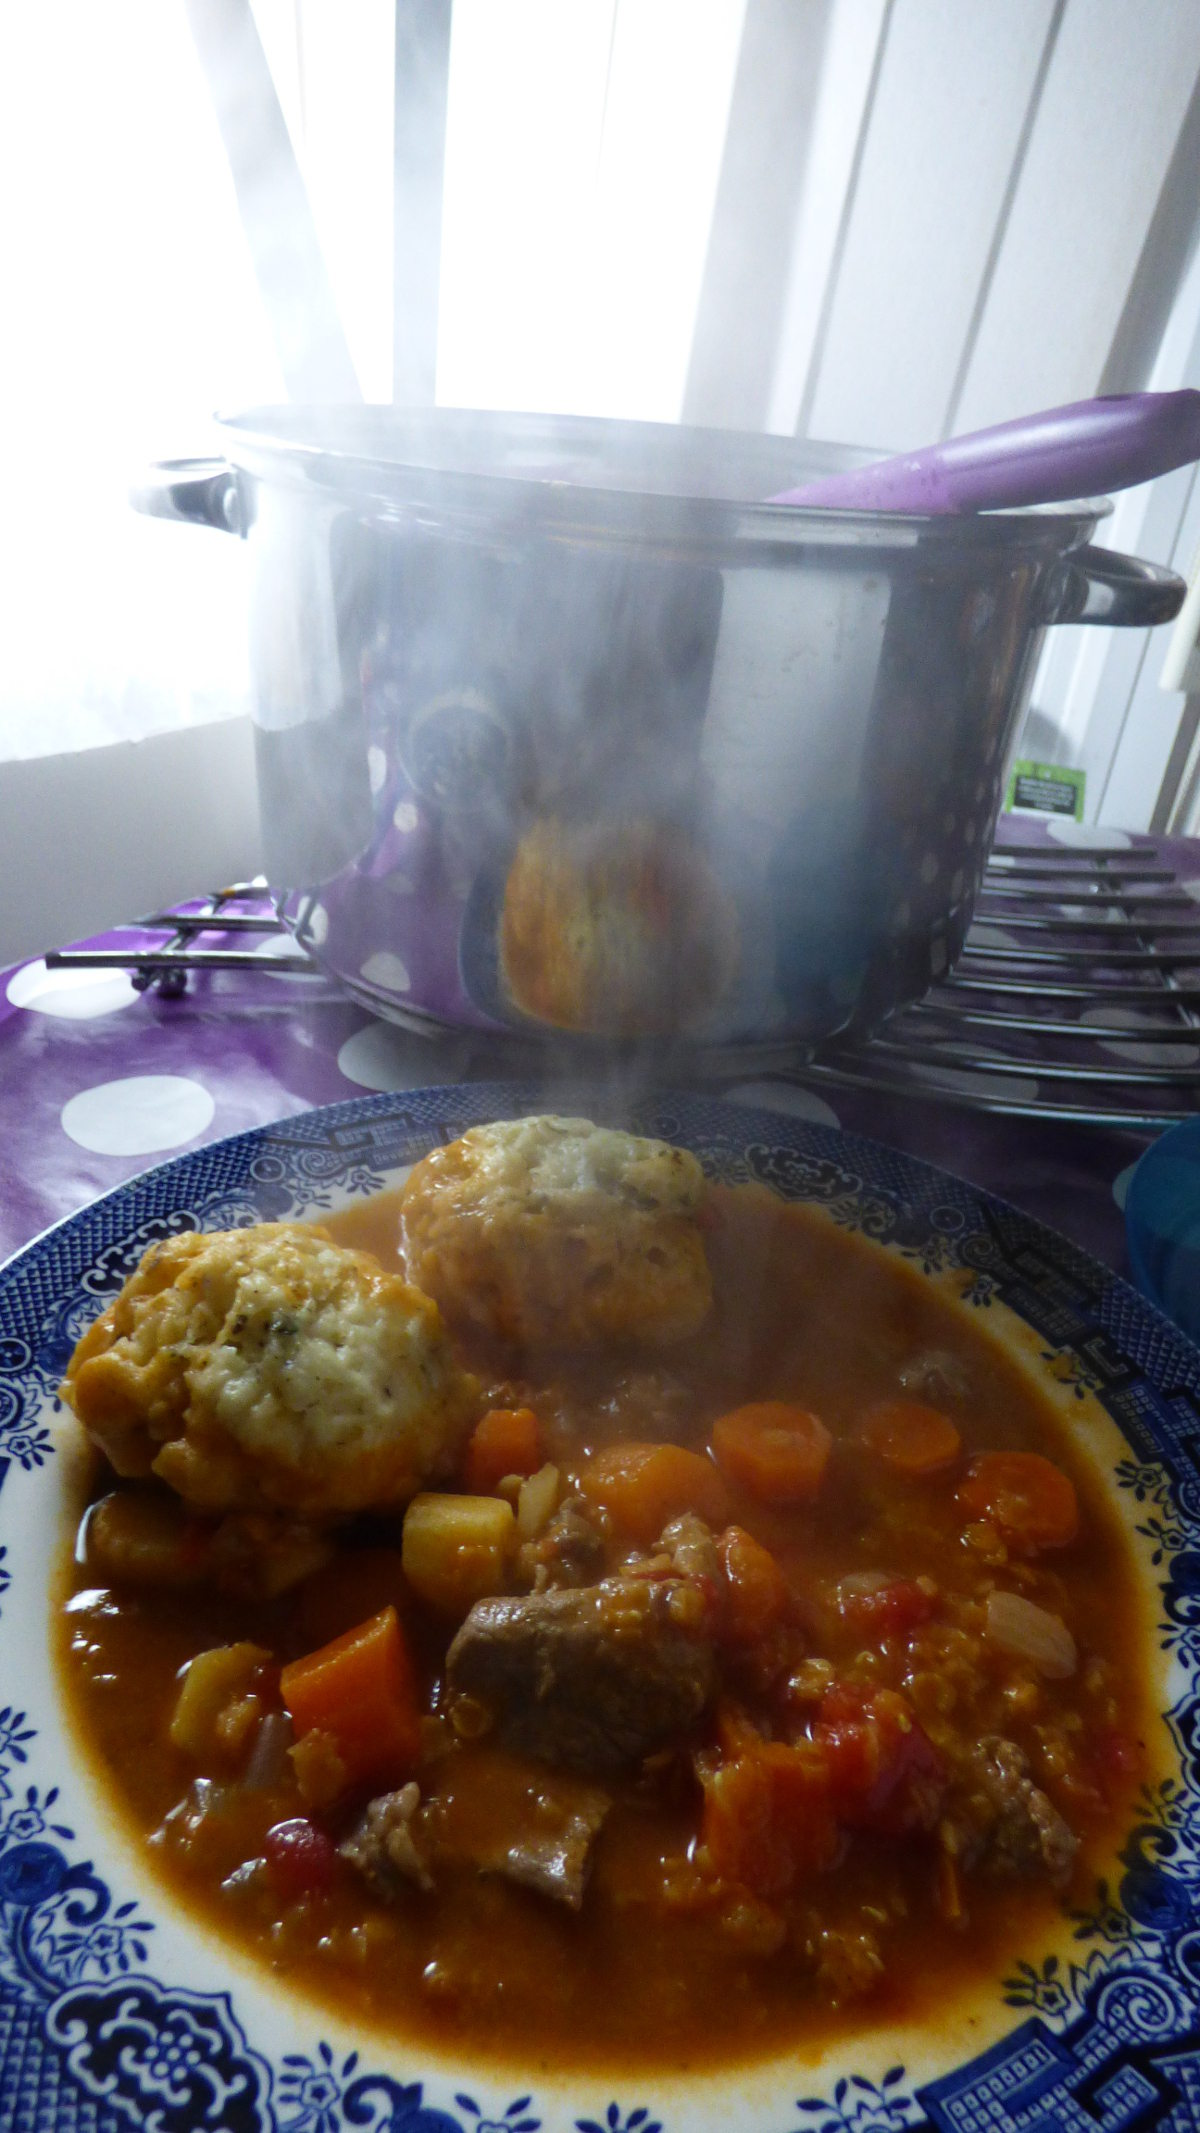 Lamb, Lentil, Lemon and Cumin Stew with Herby Dumplings